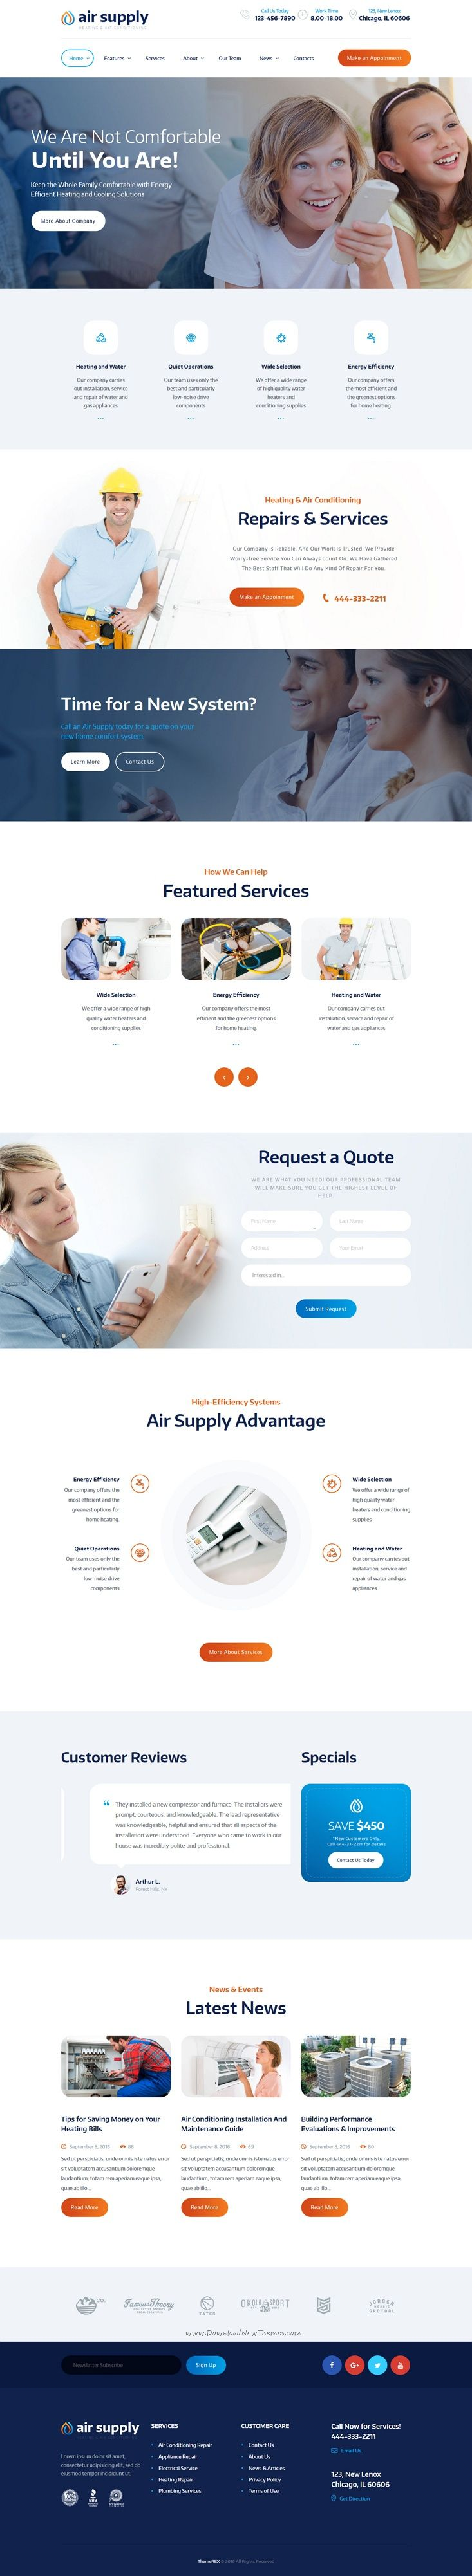 This is a wonderful responsive #HTML template #air condition and #heating services website download now➩ https://themeforest.net/item/air-conditioning-and-heating-services-site-template/19213395?ref=Datasata